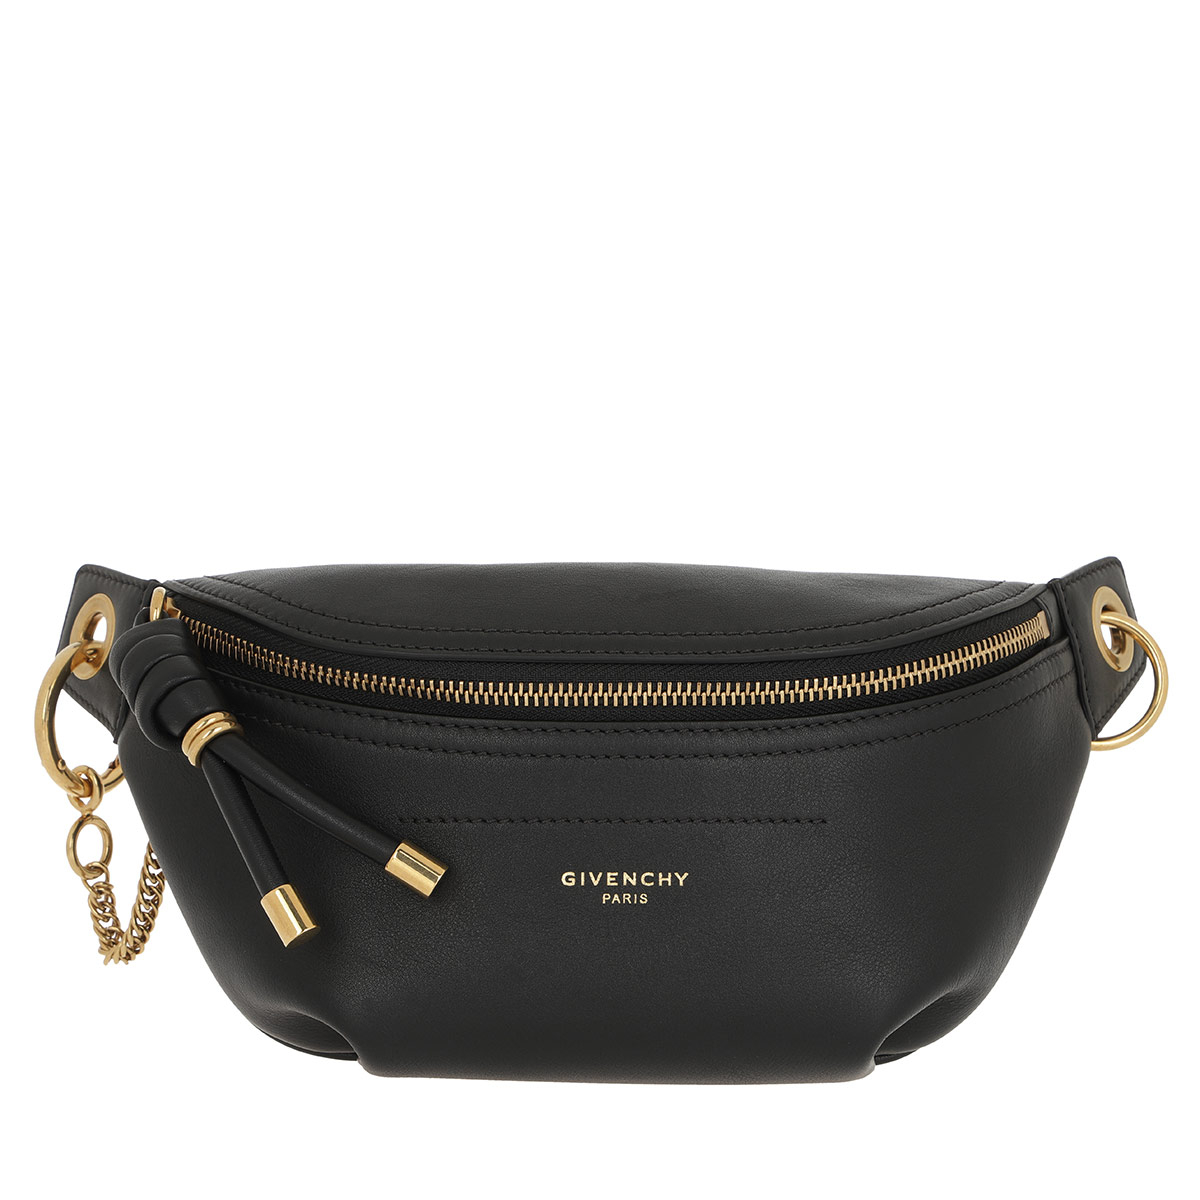 Givenchy Gürteltasche - Mini Belt Bag Leather Black - in schwarz - für Damen